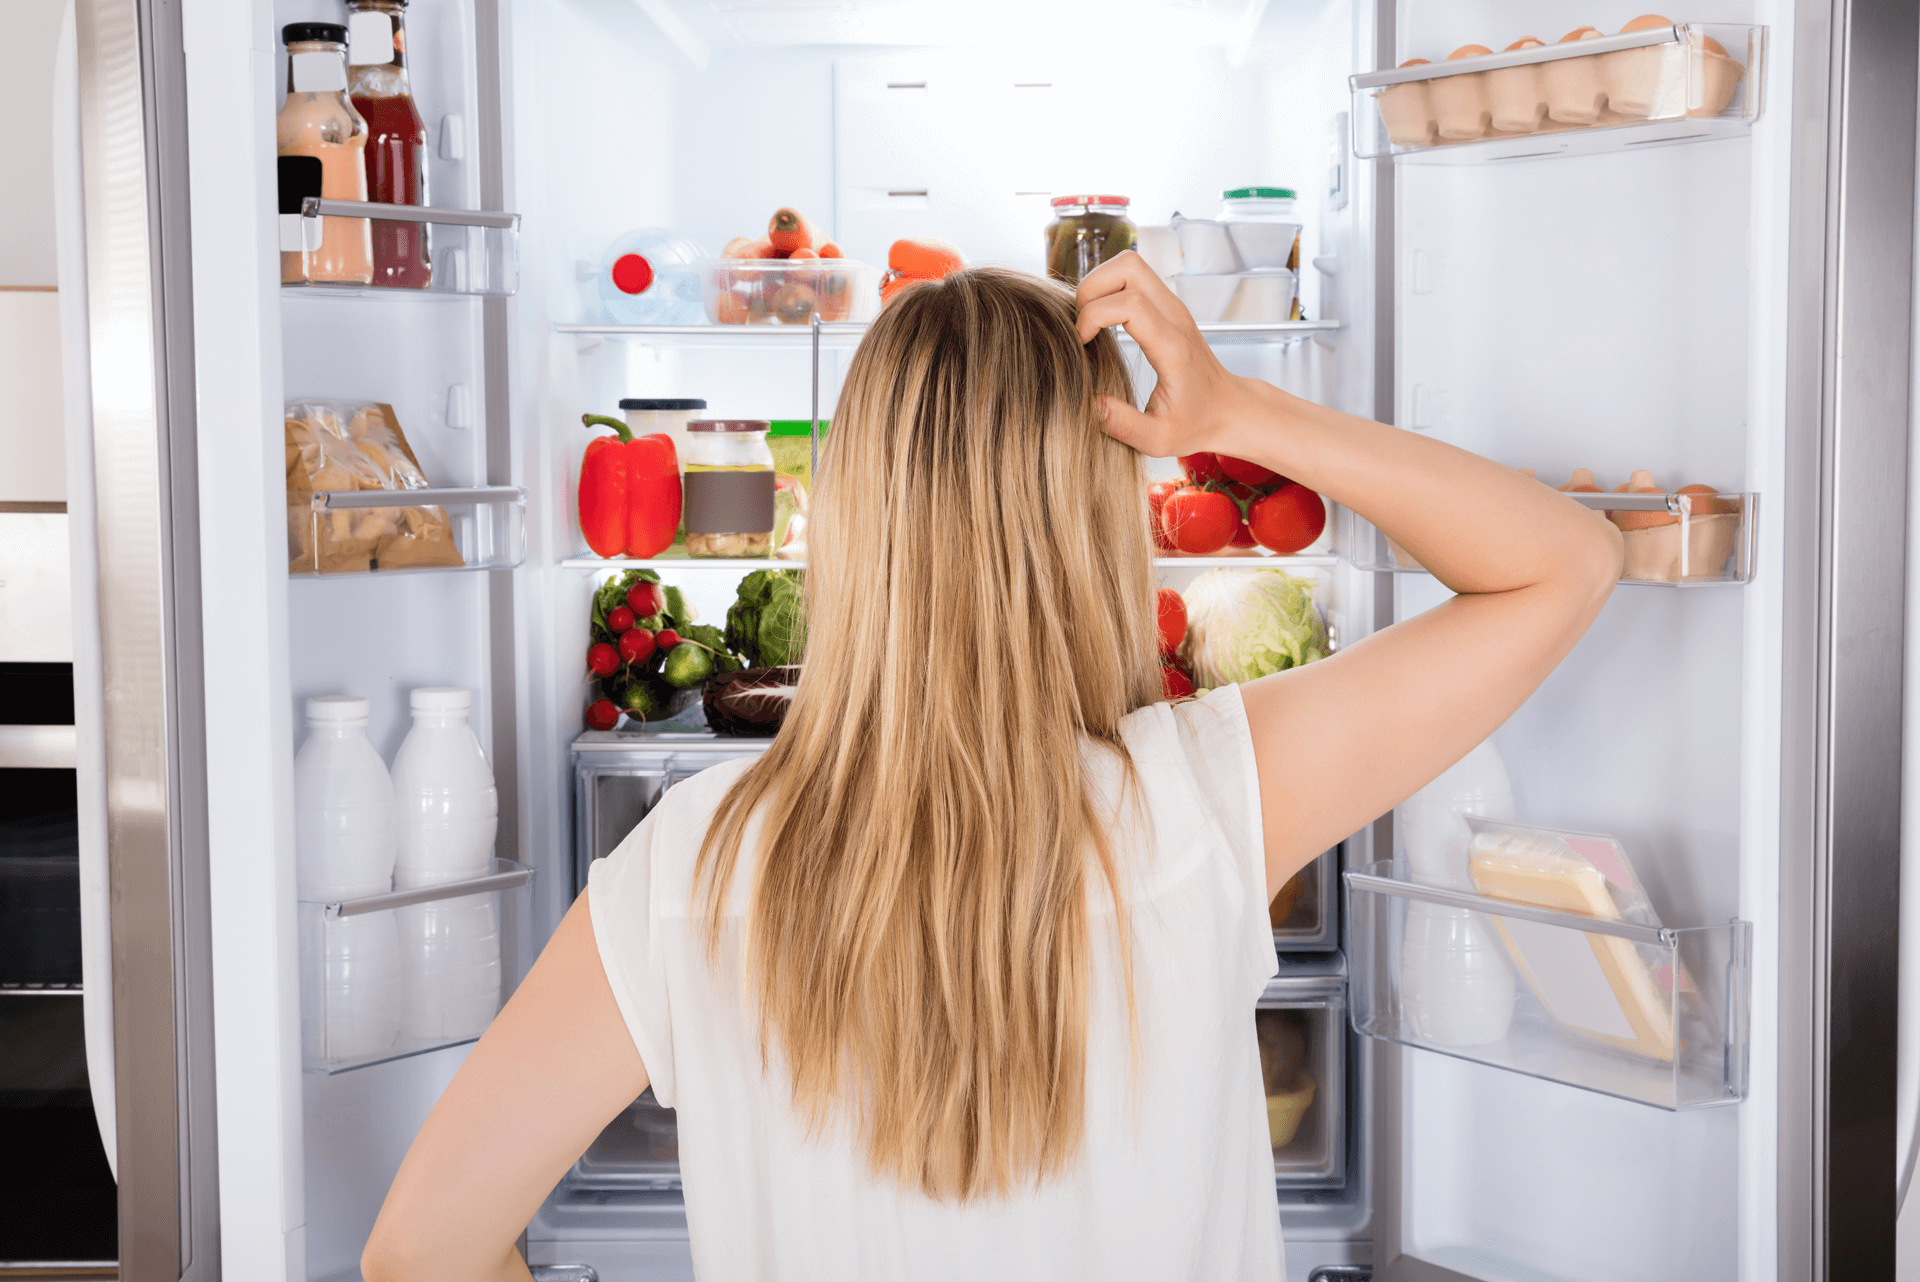 Woman looking into refrigerator deciding on what to eat